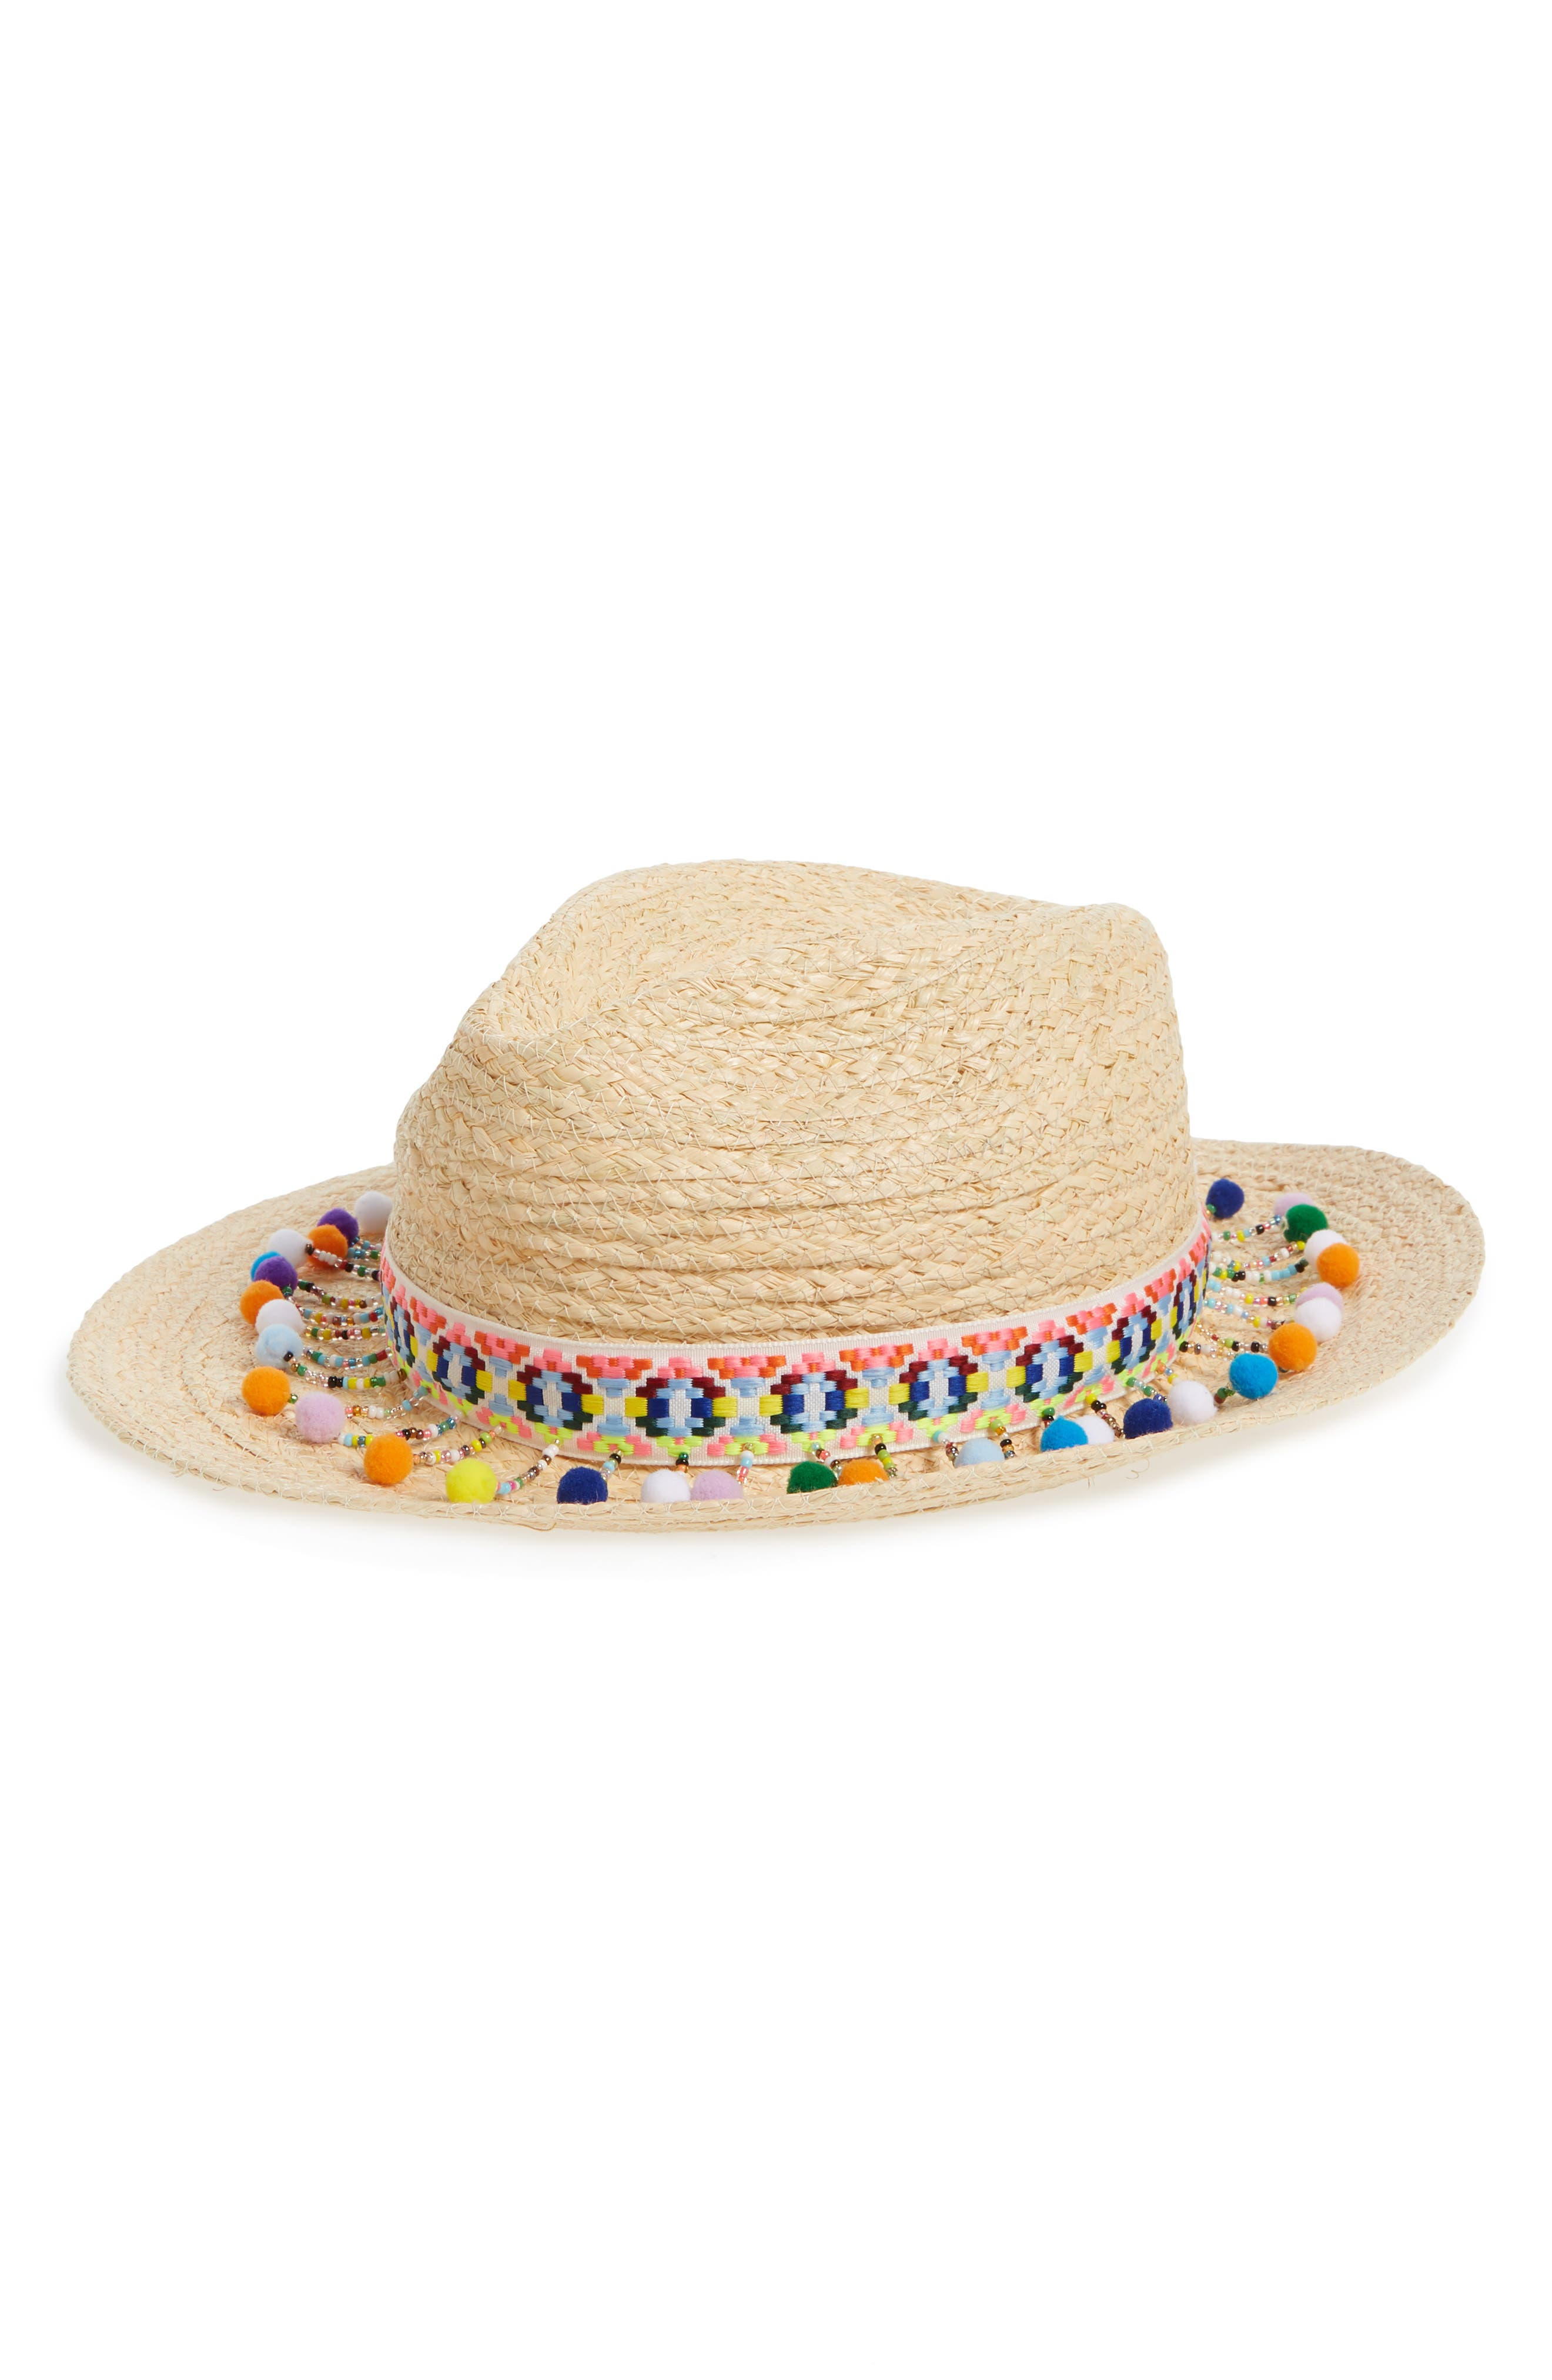 Beaded Pompom Trim Panama Hat,                             Main thumbnail 1, color,                             Natural Combo